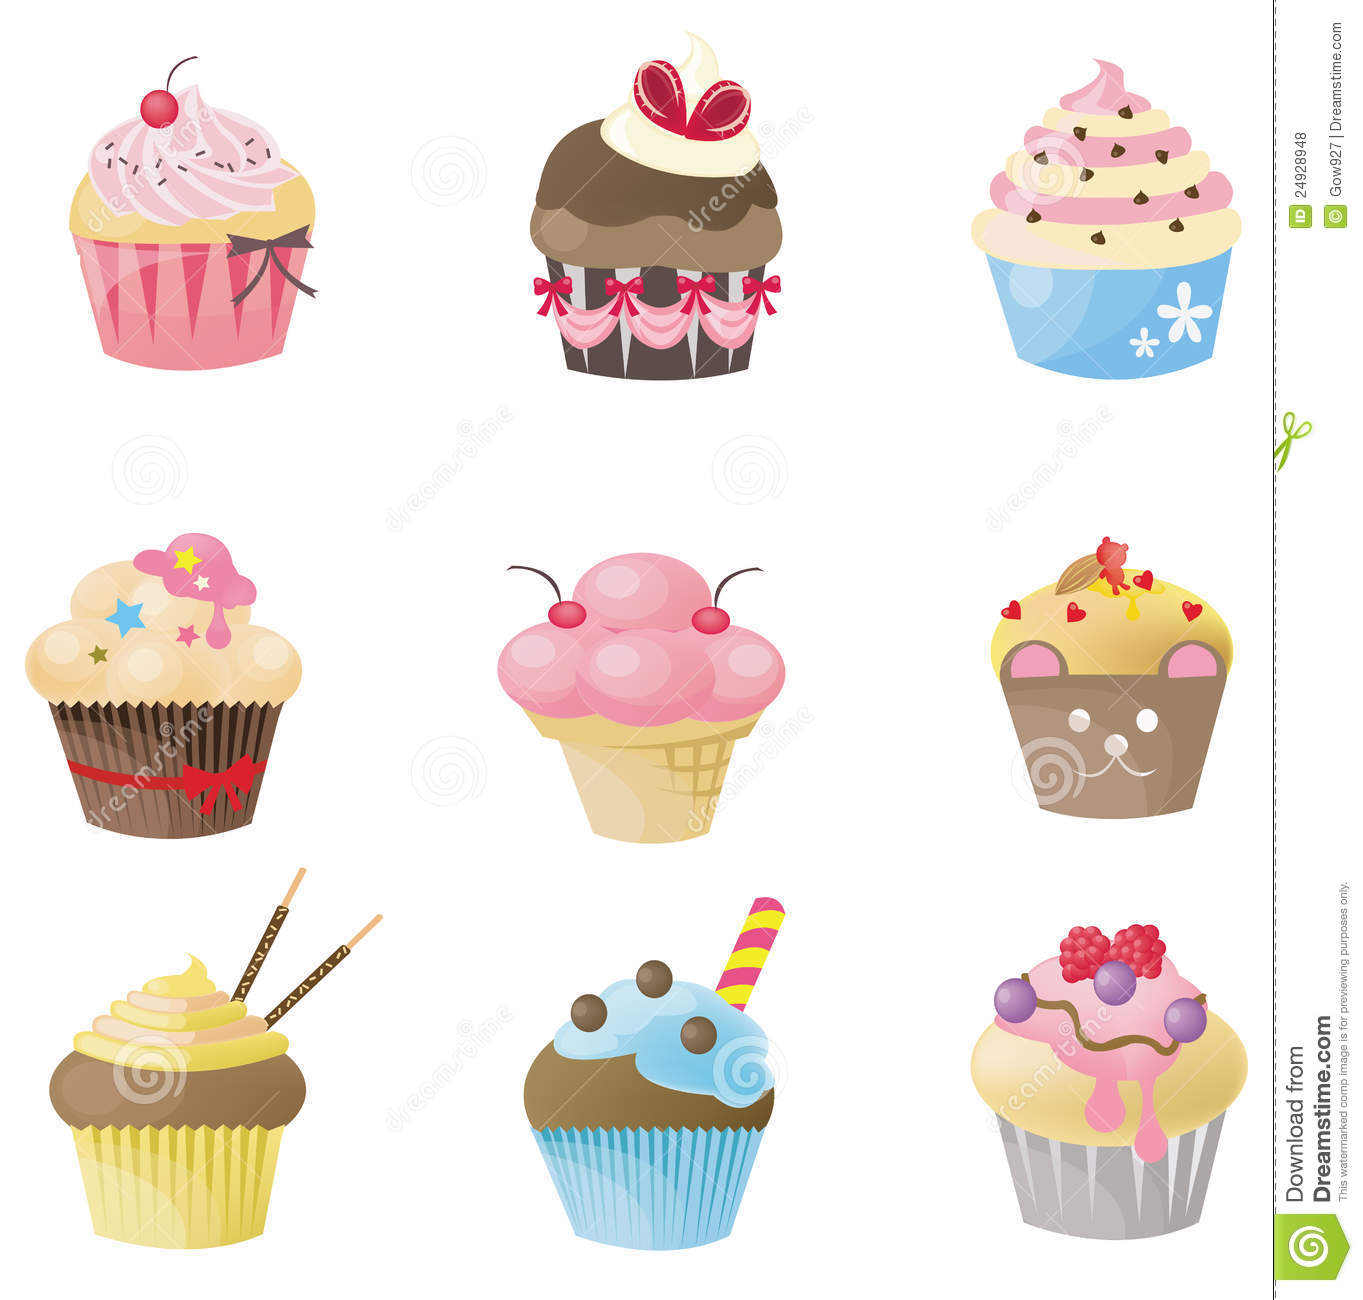 Cute Cupcake With 9 Different Look Stock Vector ...